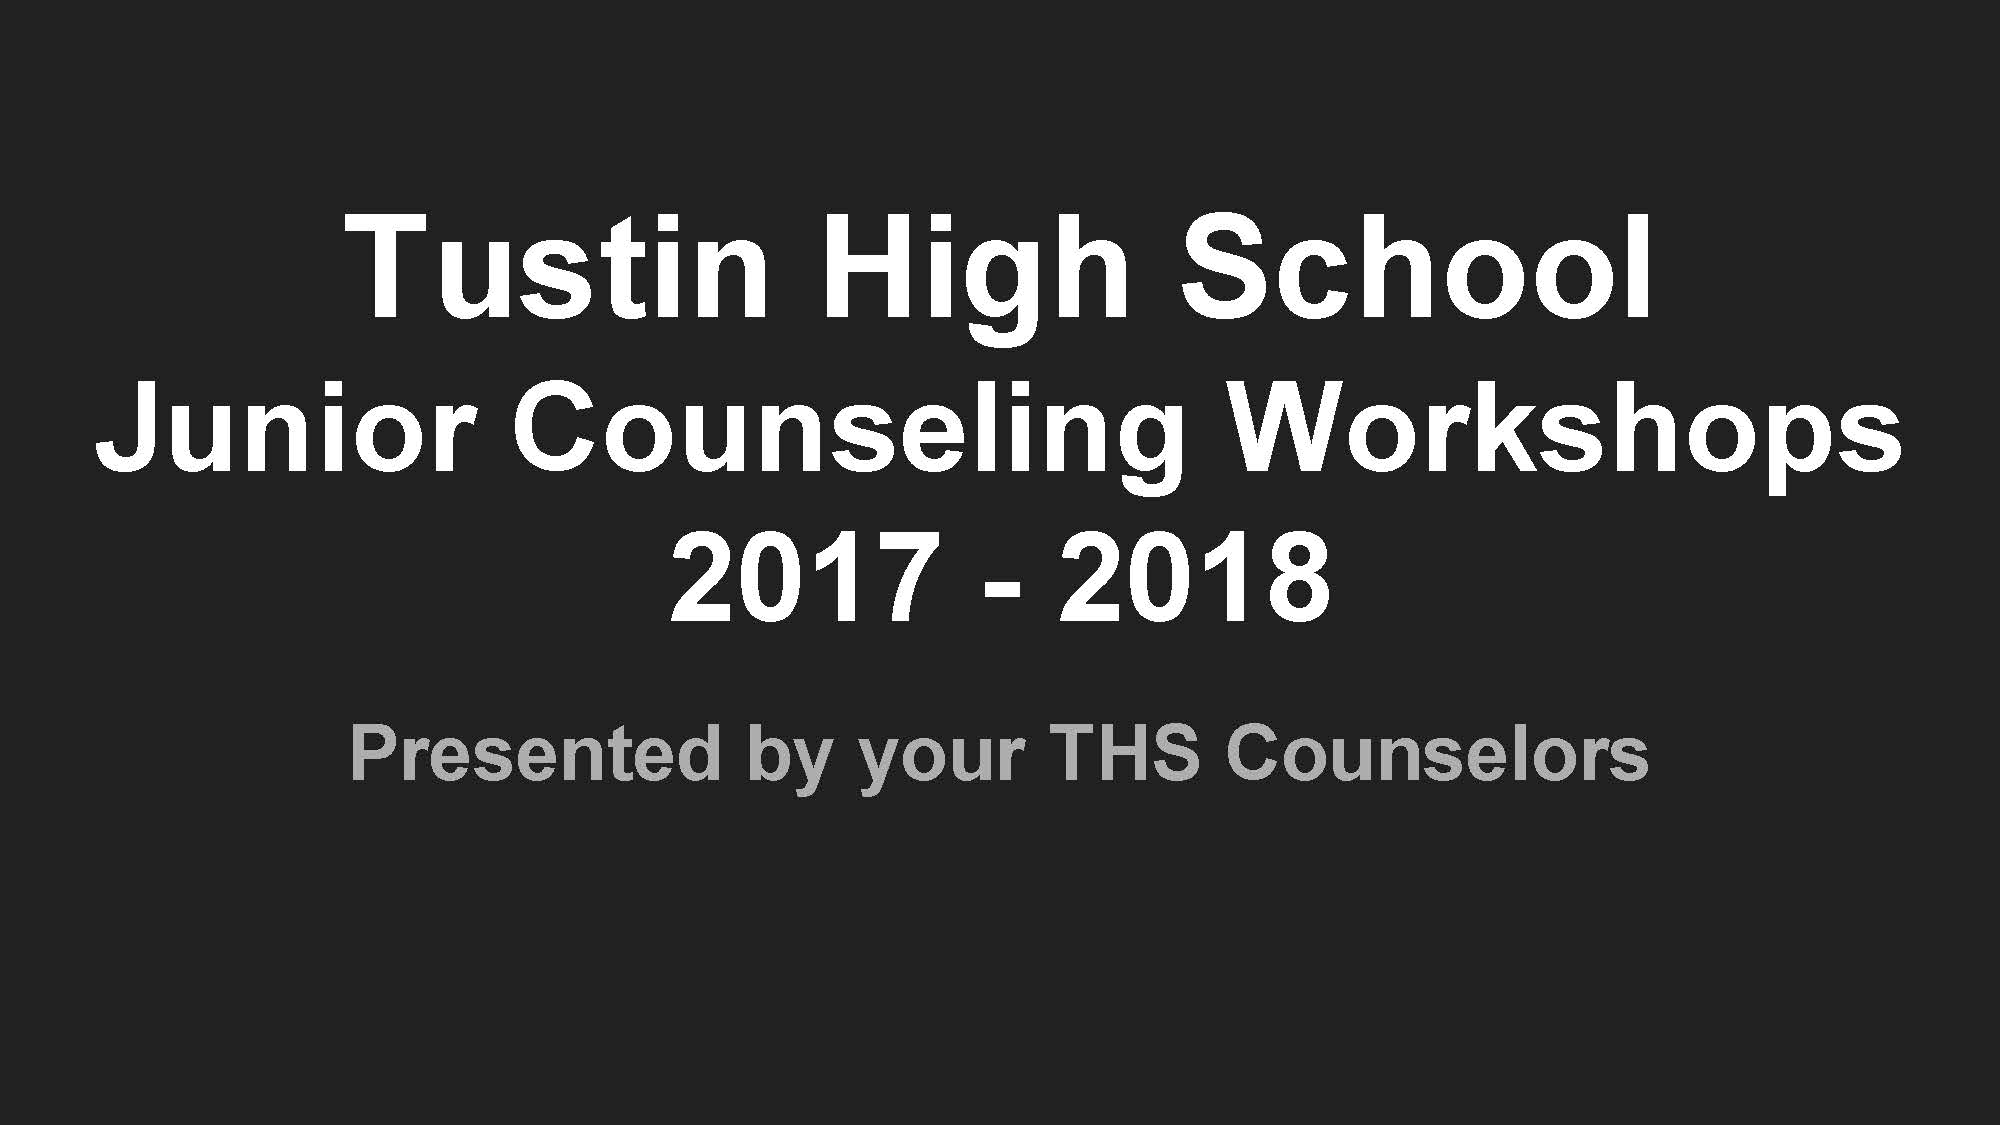 Junior Counseling Workshop Preview